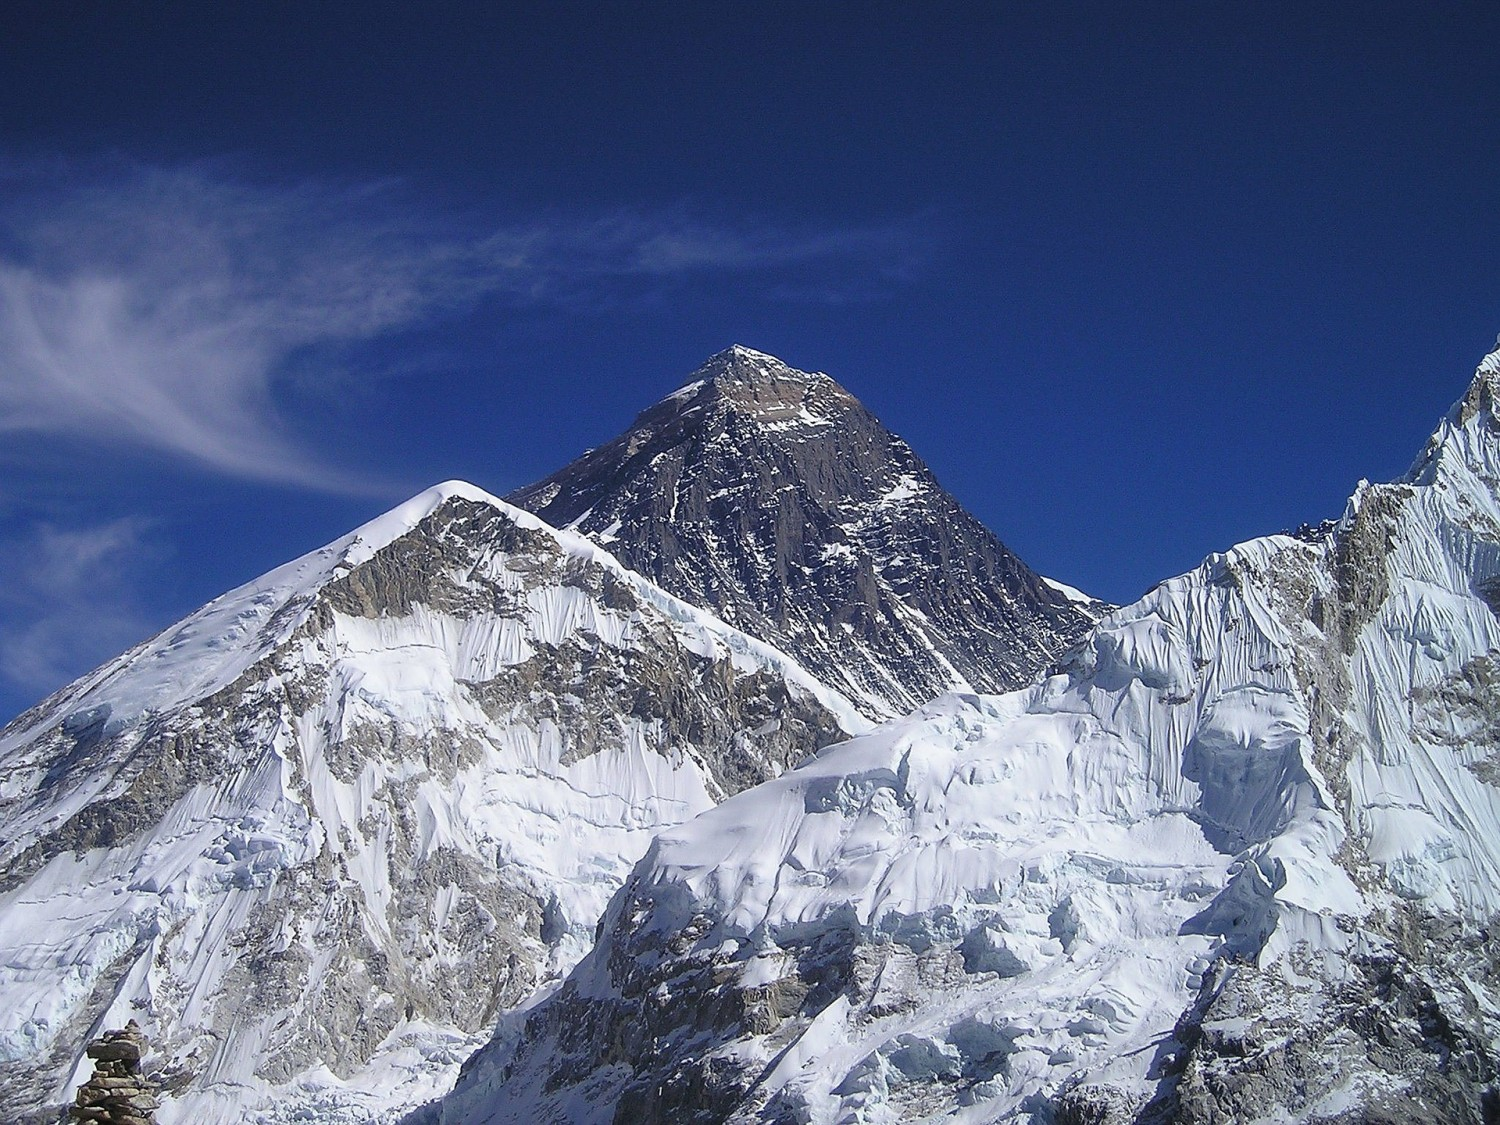 Skydiving from Mount Everest - Interesting Bucket List Ideas